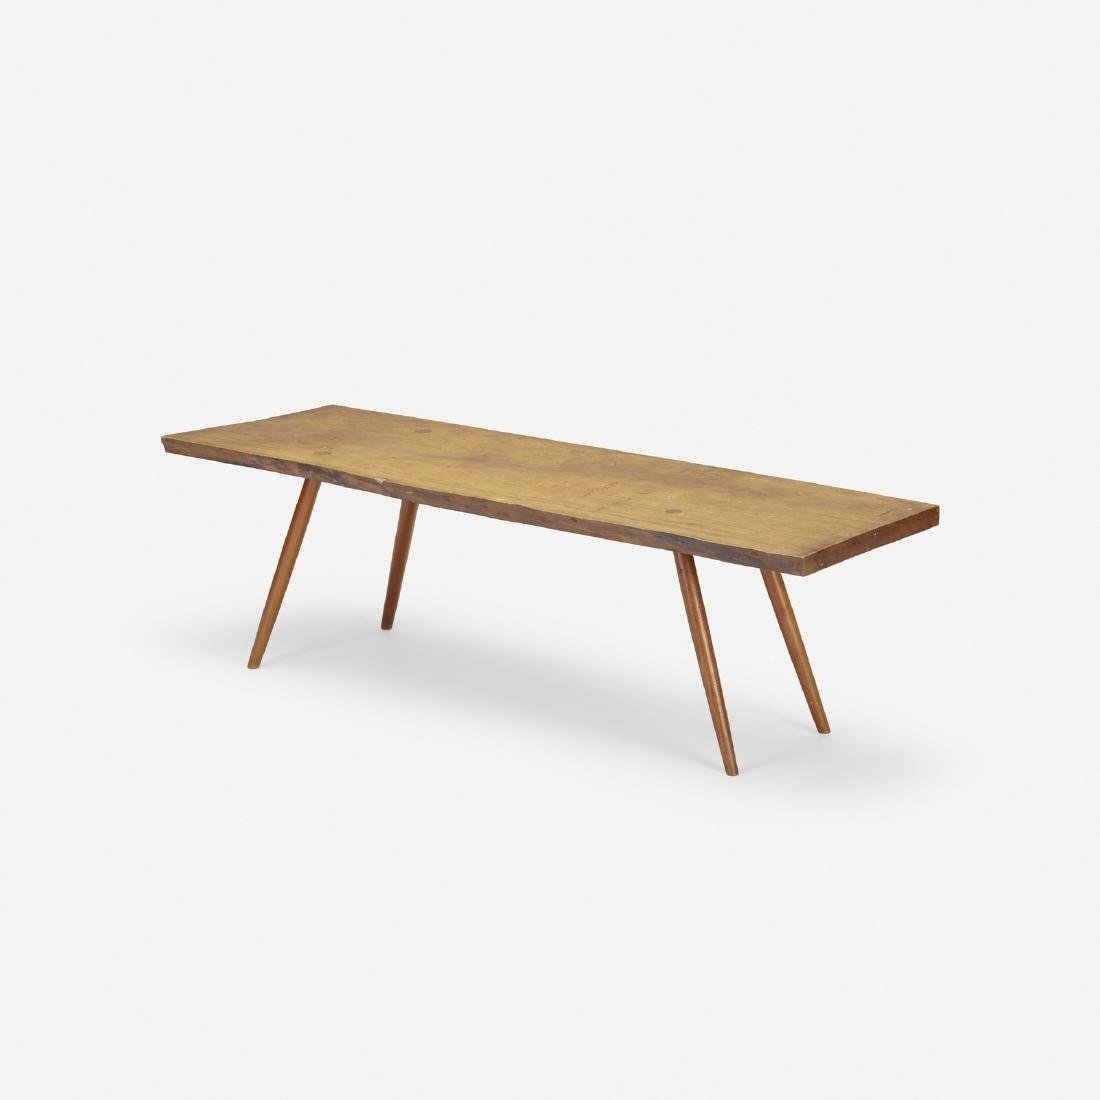 George Nakashima, Early coffee table